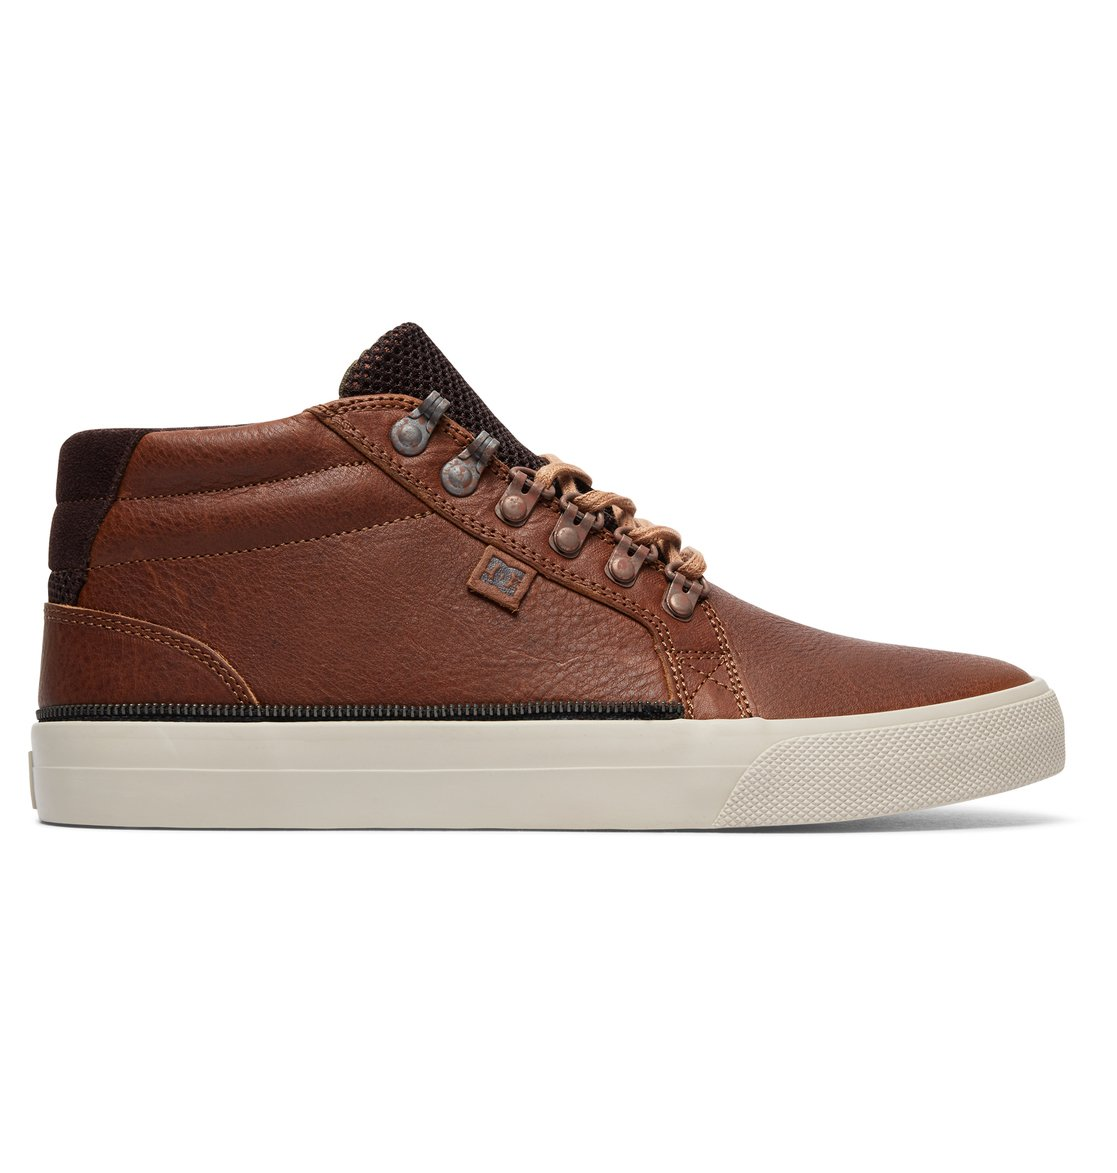 Chaussures DC SHOES TRASE LX Worn vintage (wvt)